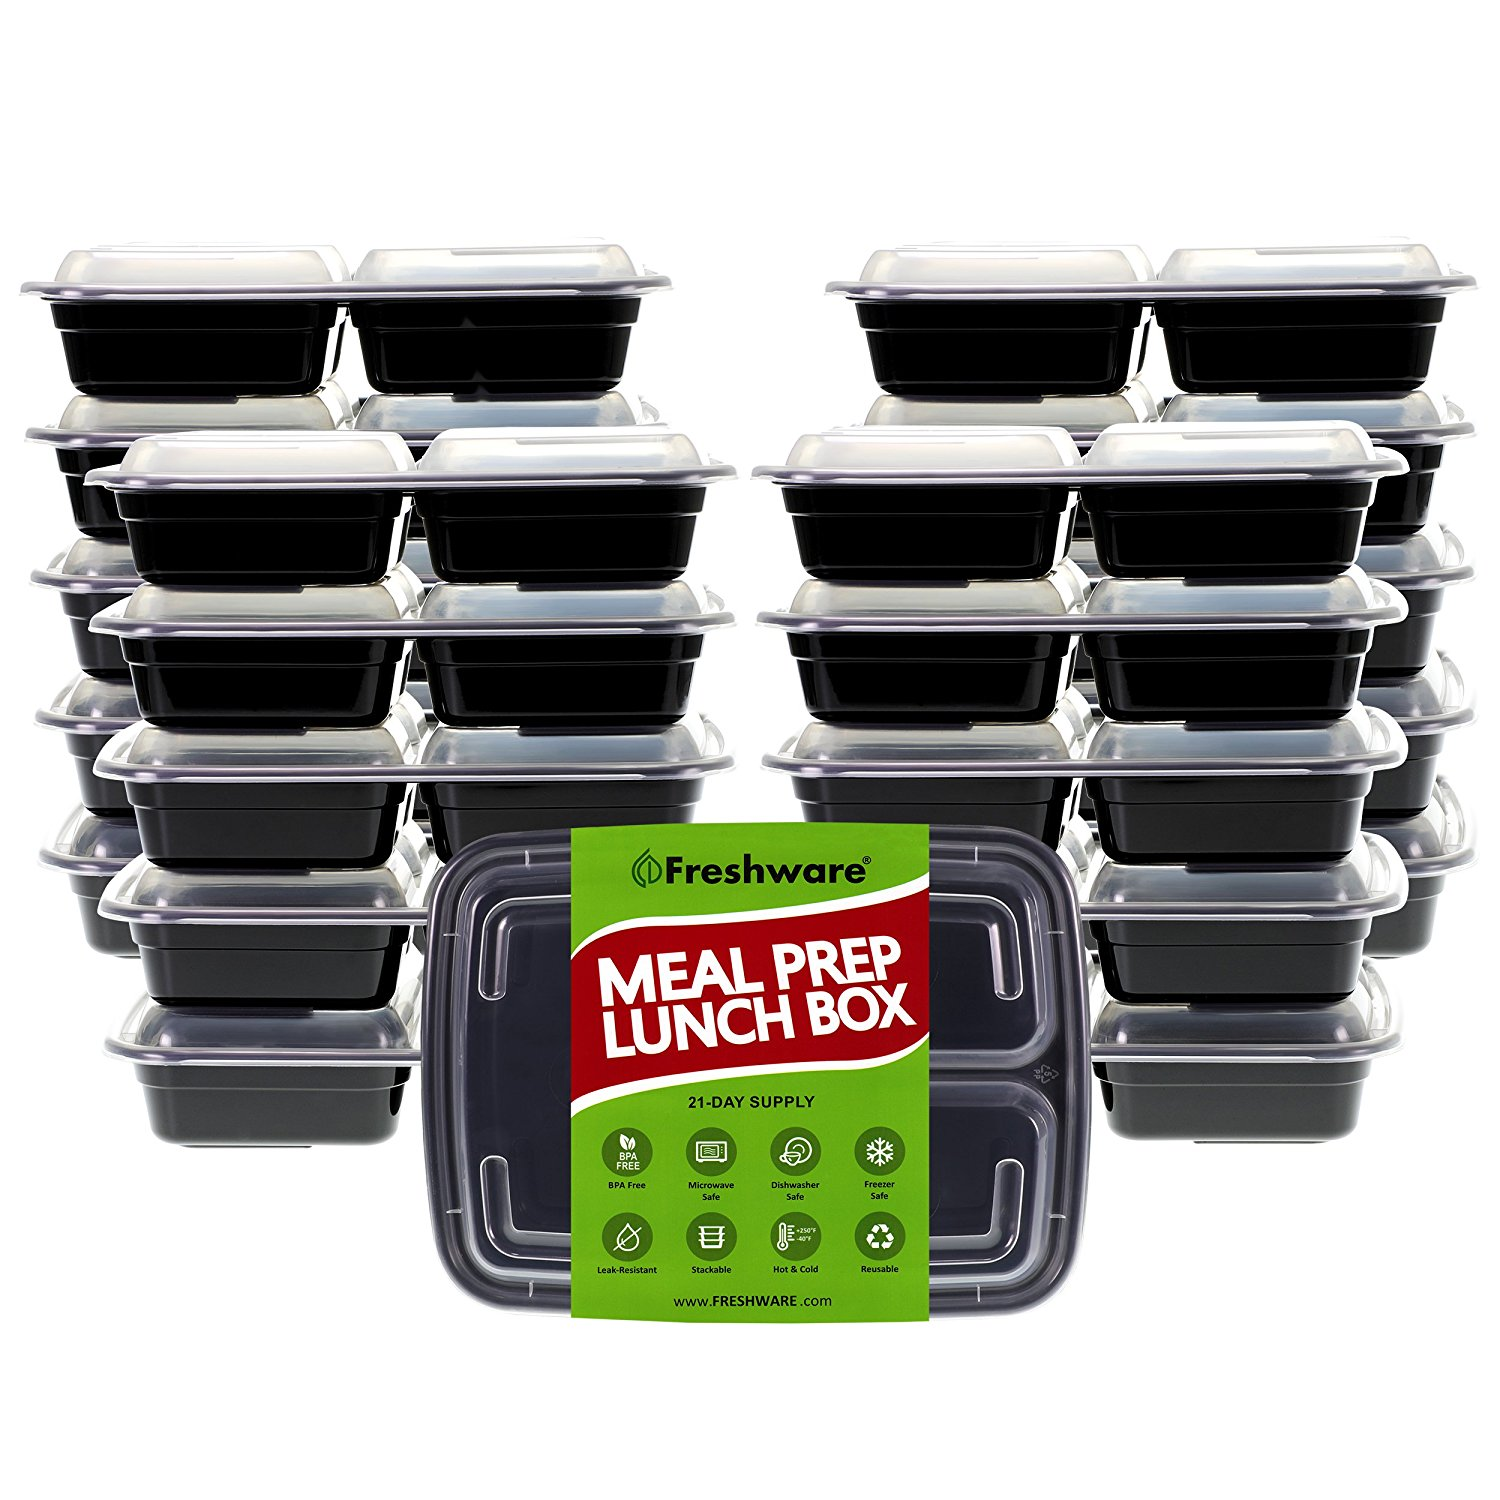 Freshware Meal Prep Containers [21 Pack] 3 Compartment with Lids, Food Storage Bento Box, BPA Free, Stackable, Lunch Boxes, Microwave/Dishwasher/Freezer Safe, Portion Control, 21 day fix (24 oz)